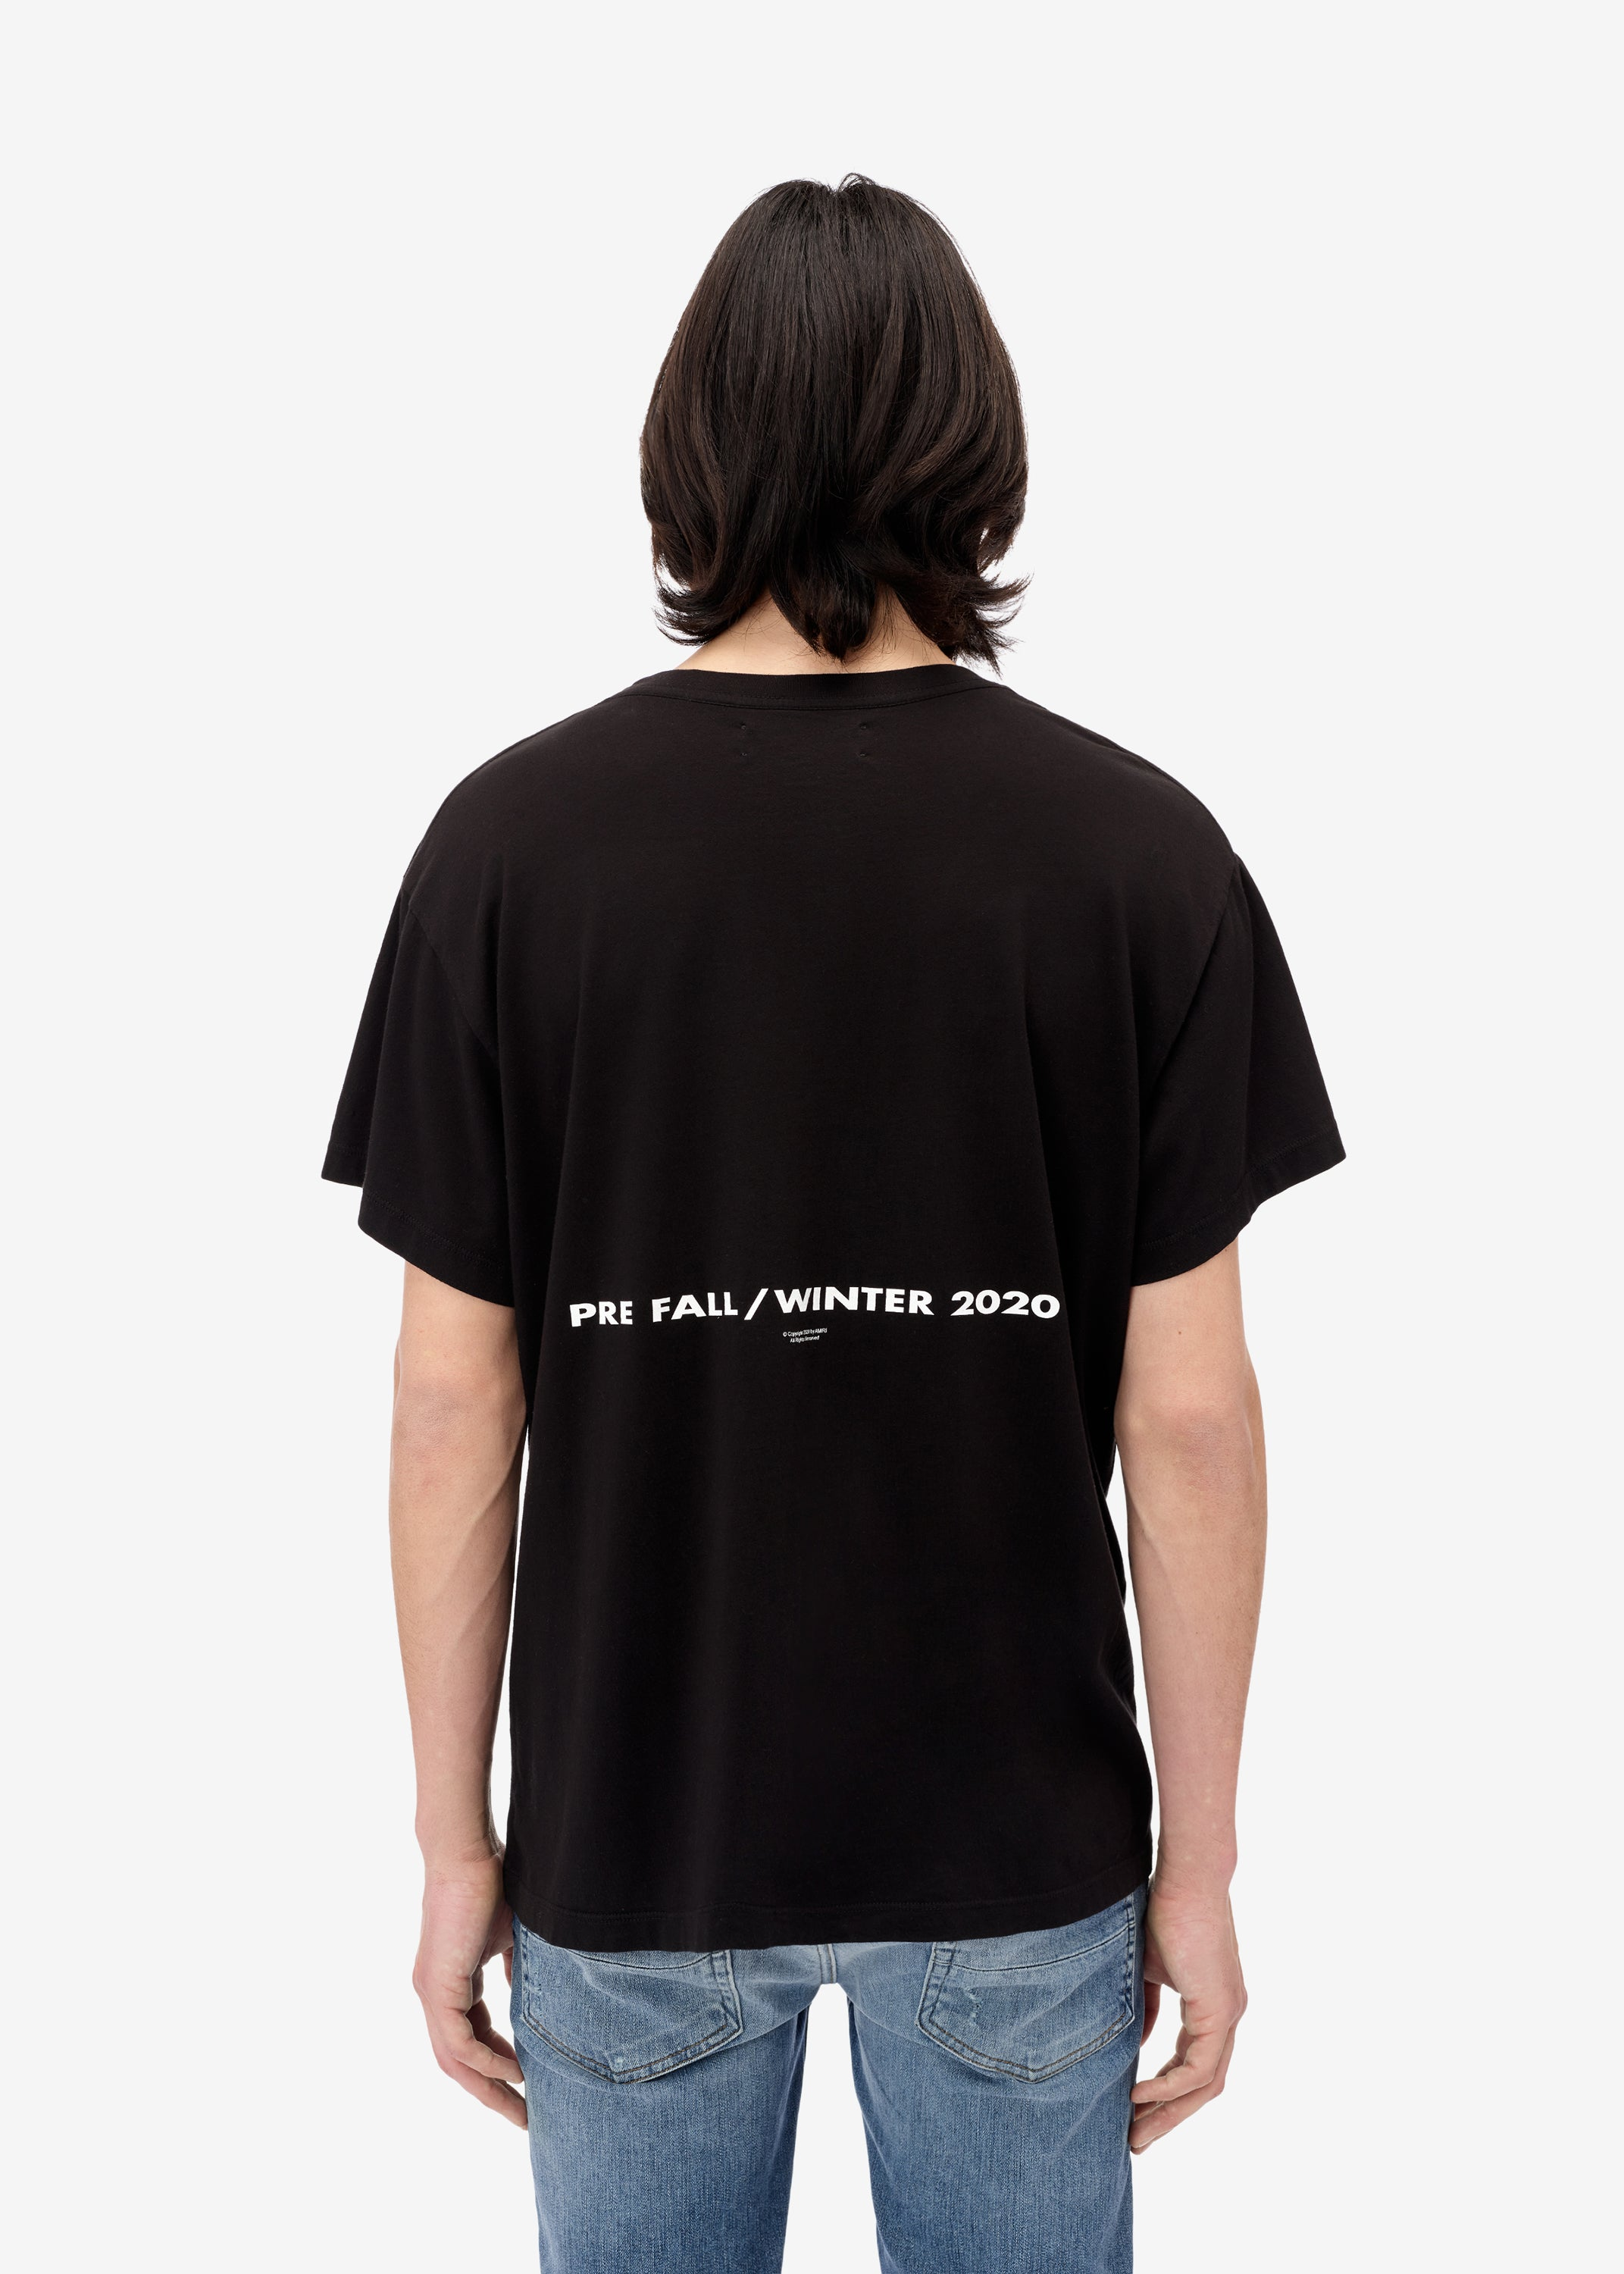 pf20-amiri-tee-web-exclusive-black-image-3